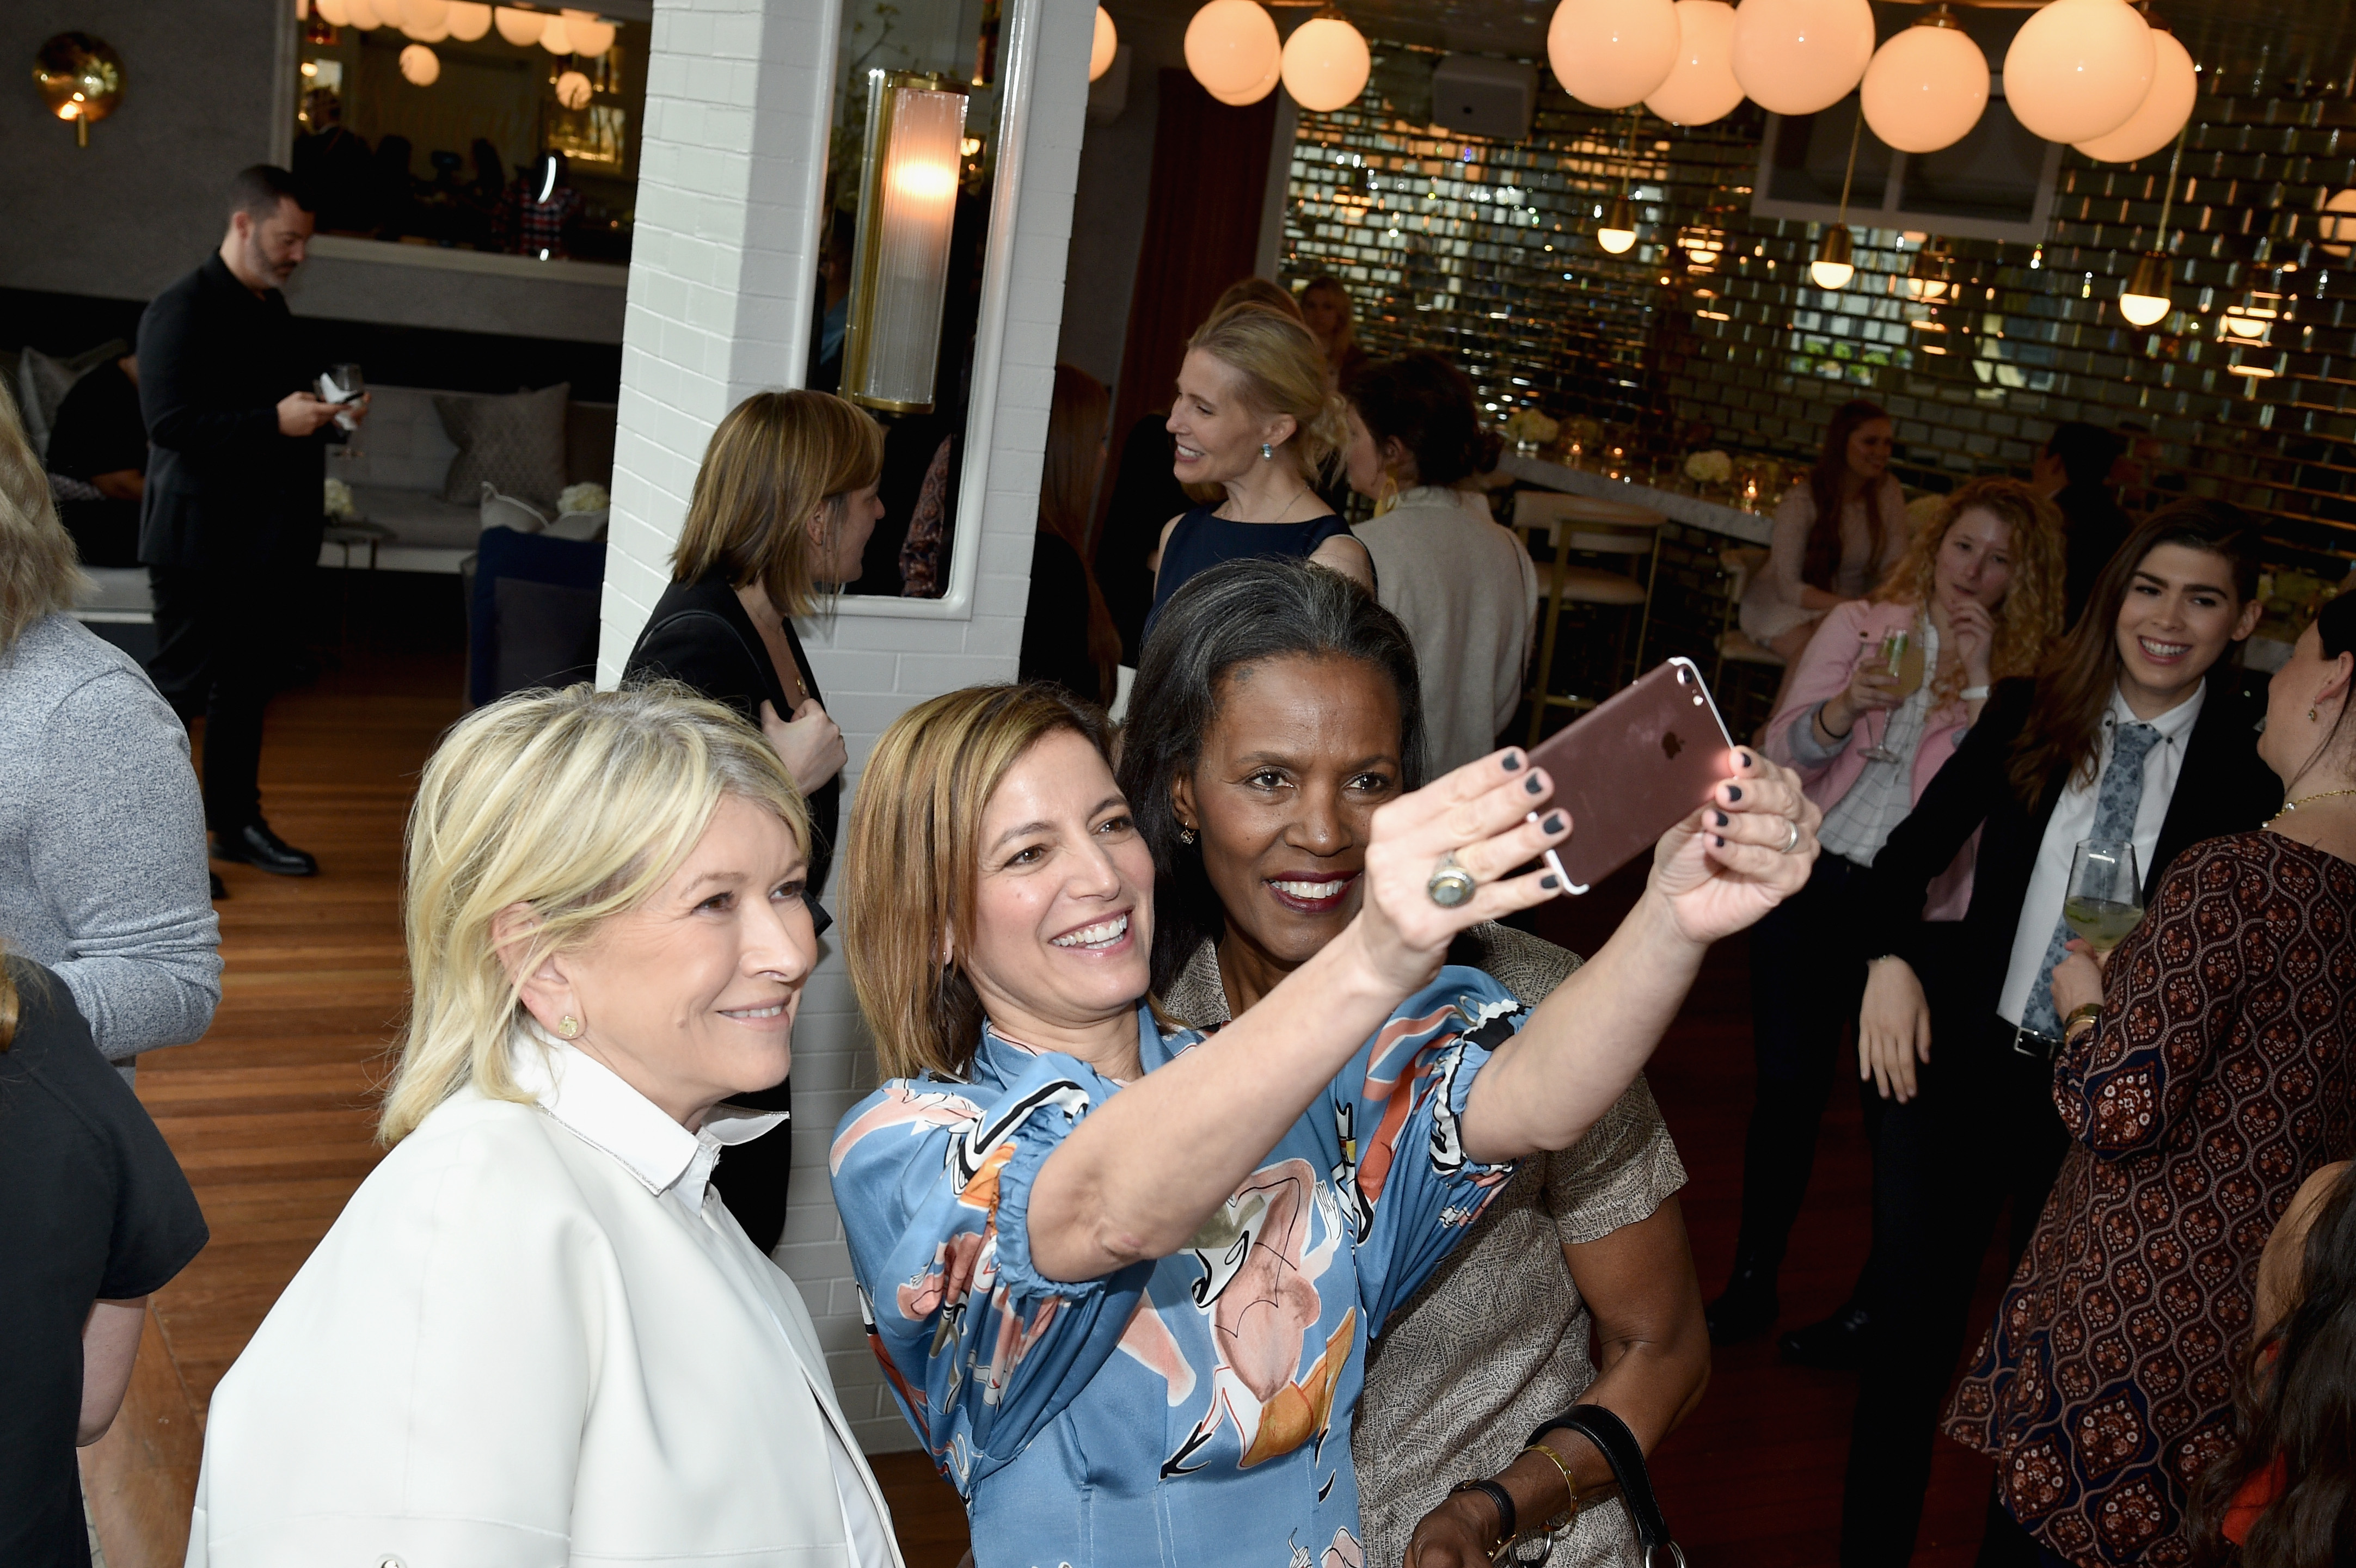 NEW YORK, NY - APRIL 25:  (L-R) Martha Stewart, Cindi Leive and Katiti Kironde attend the Glamour and L'Oreal Paris 2017 College Women of the Year Celebration at La Sirena on April 25, 2017 in New York City.  (Photo by Bryan Bedder/Getty Images for Glamour)